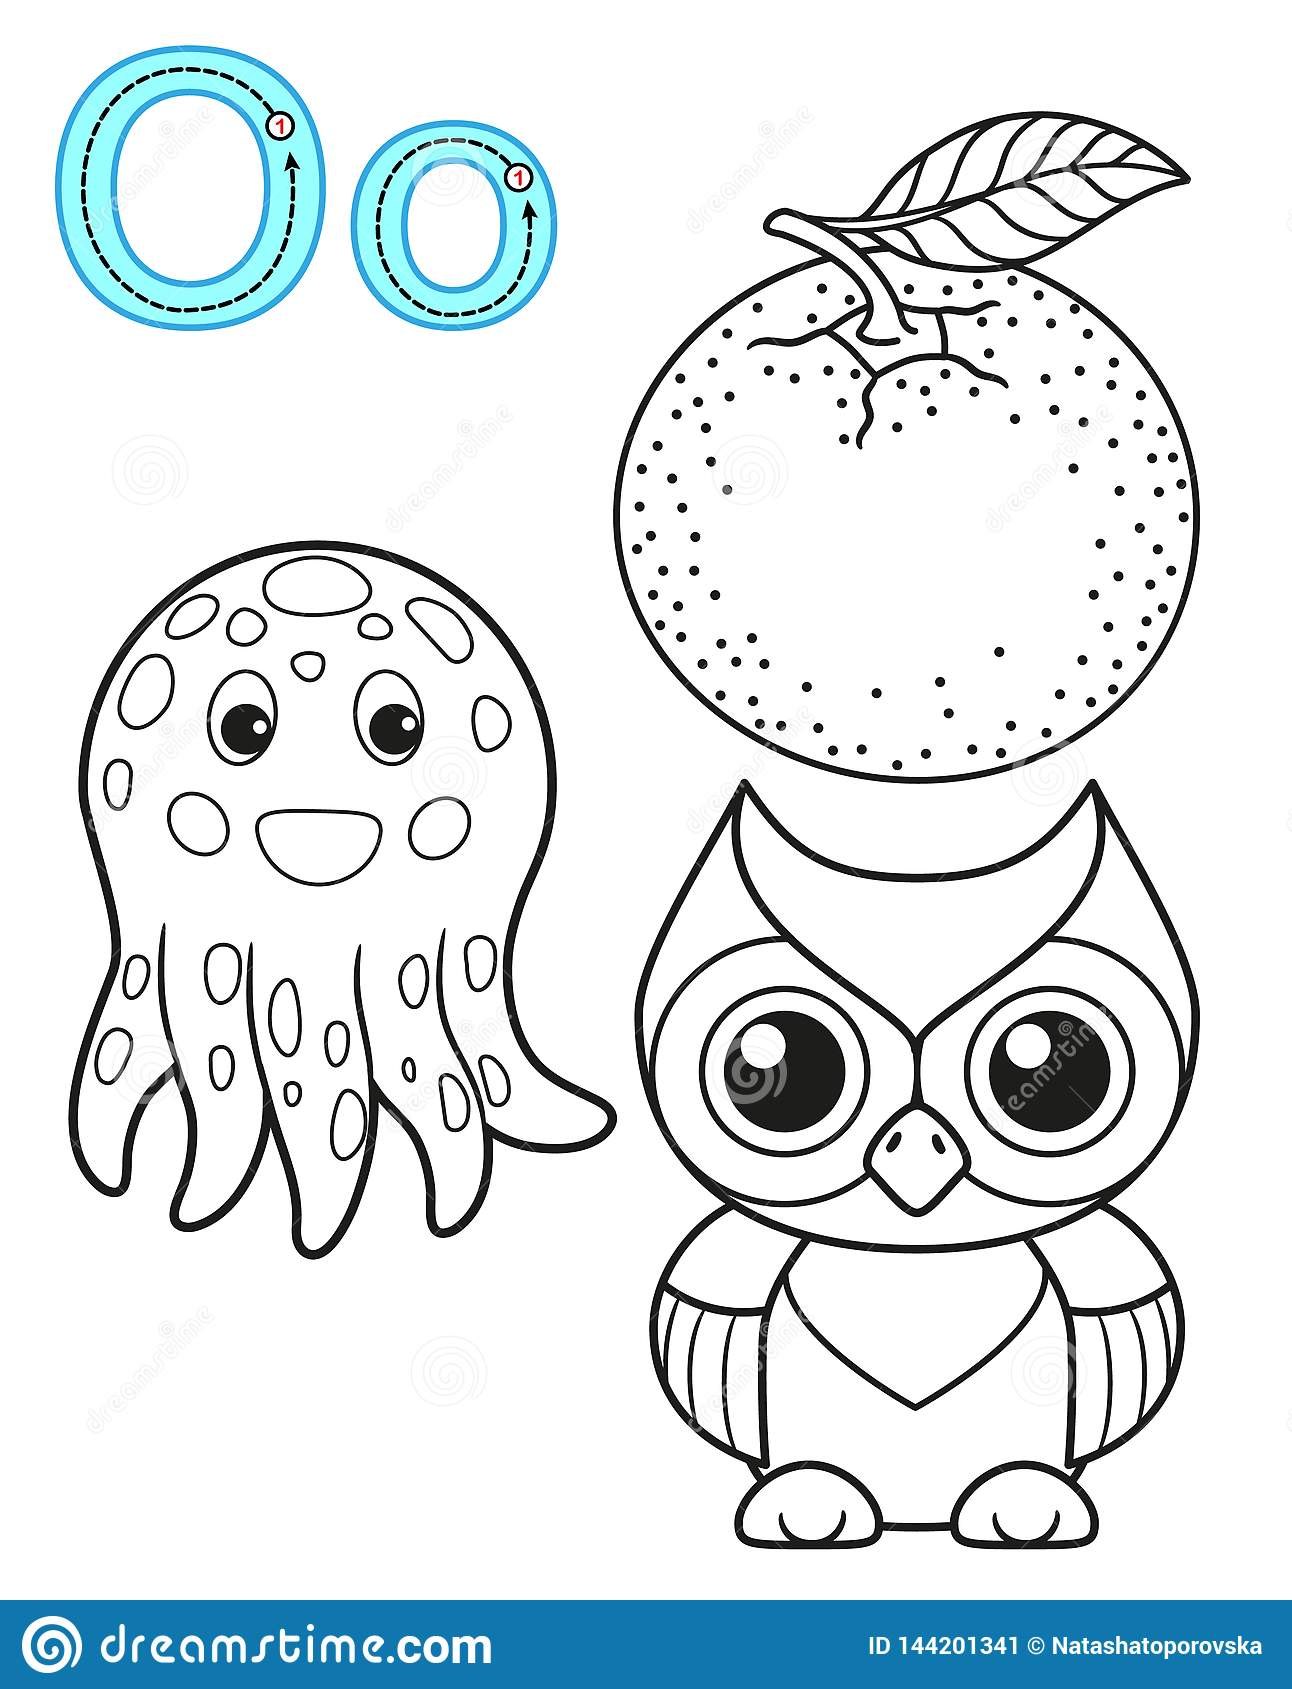 Printable Coloring Page For Kindergarten And Preschool ...